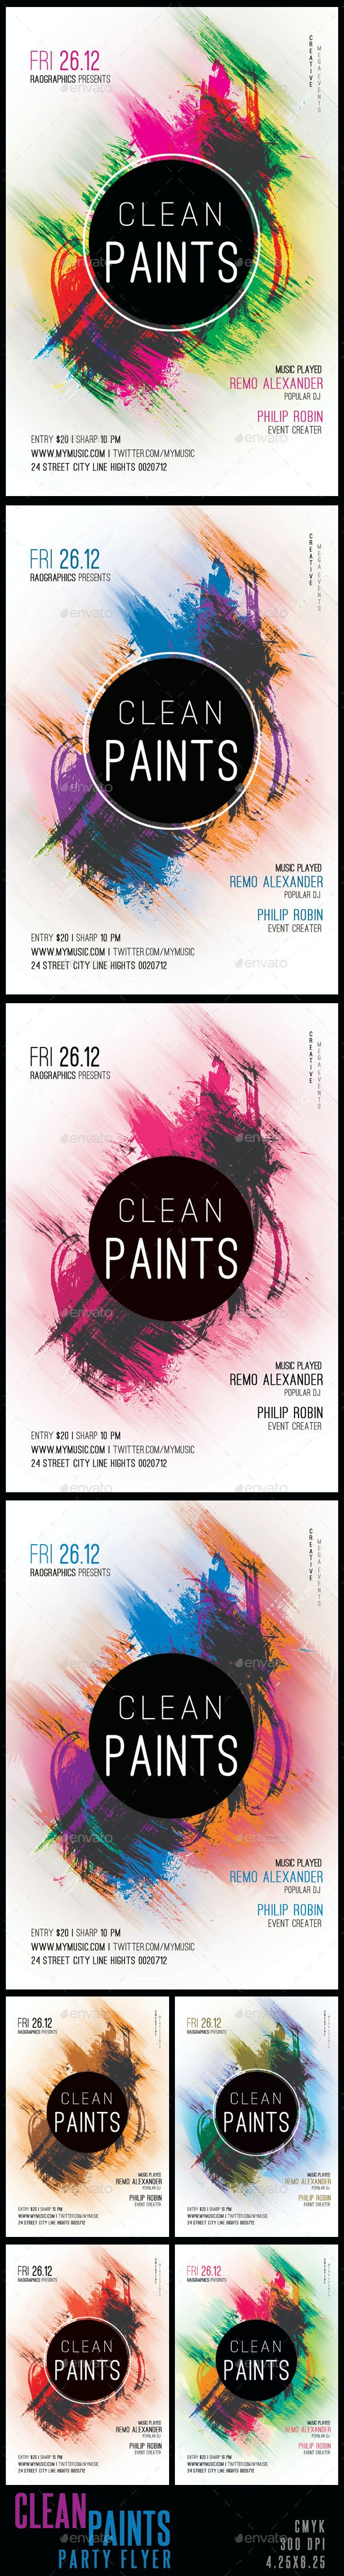 Clean Paints Party Flyer Template - Clubs & Parties Events